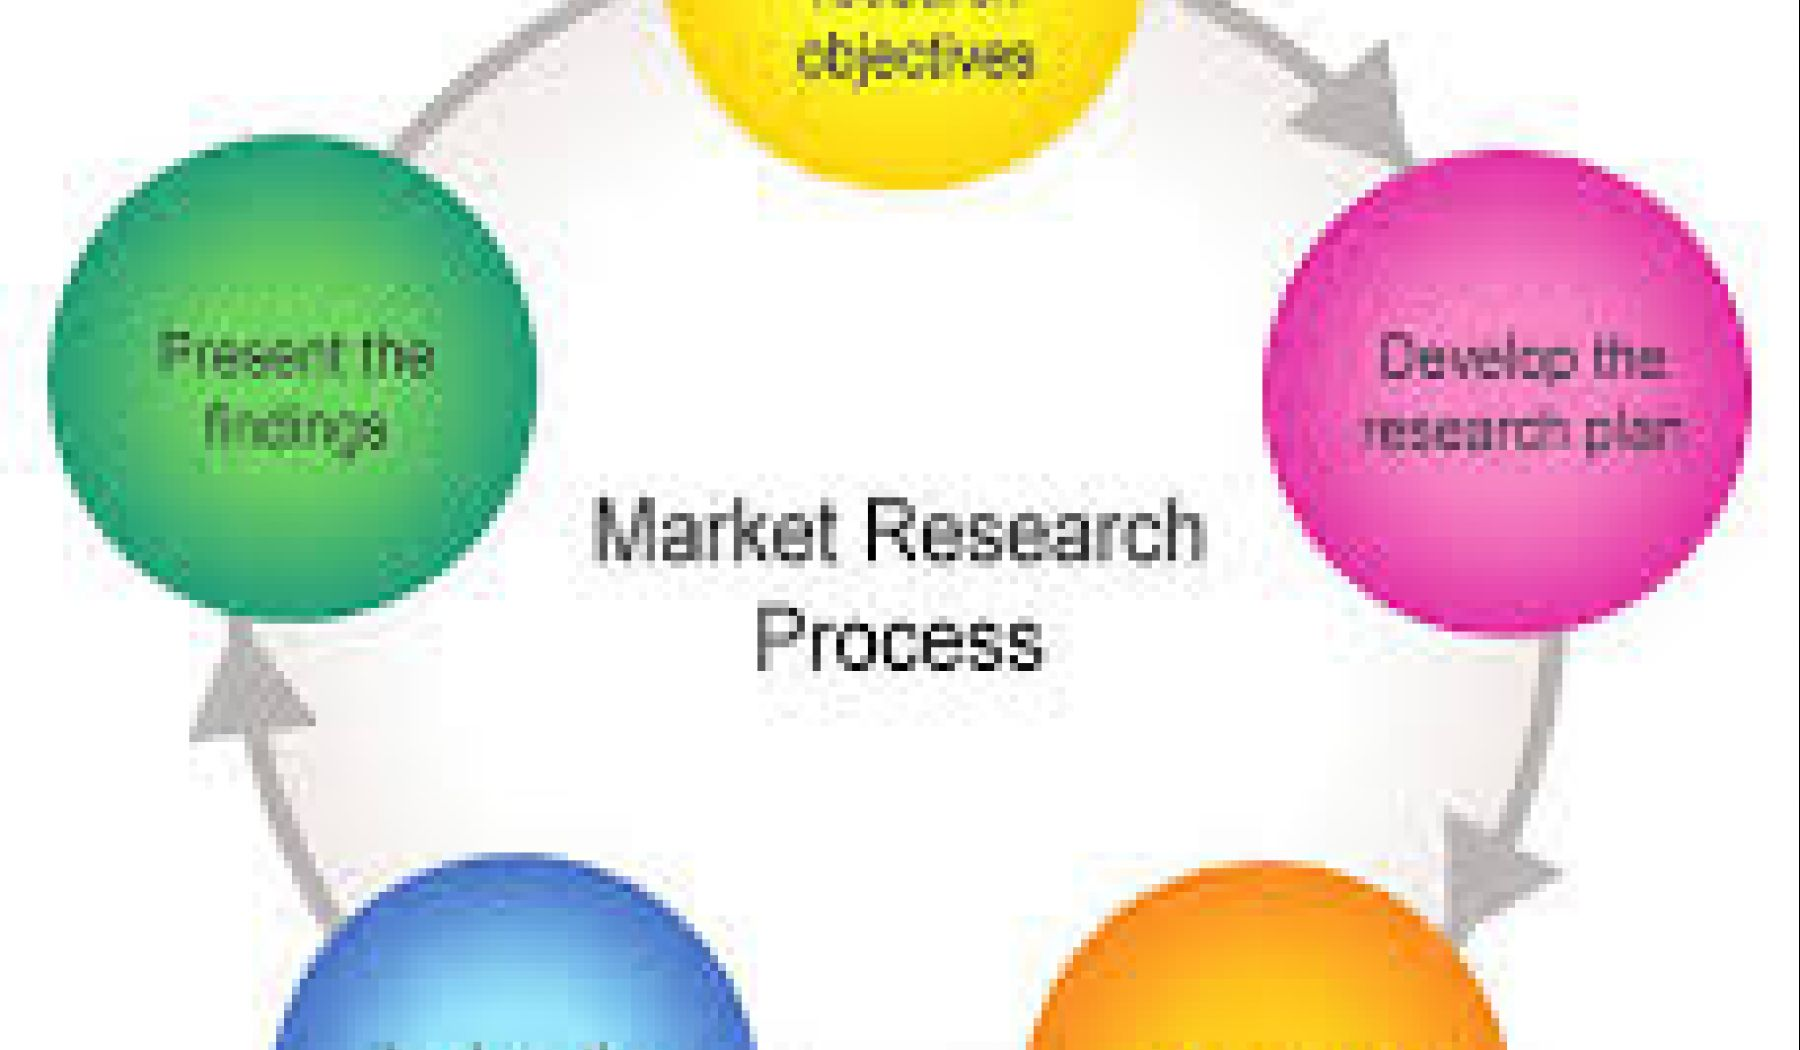 process of marketing research